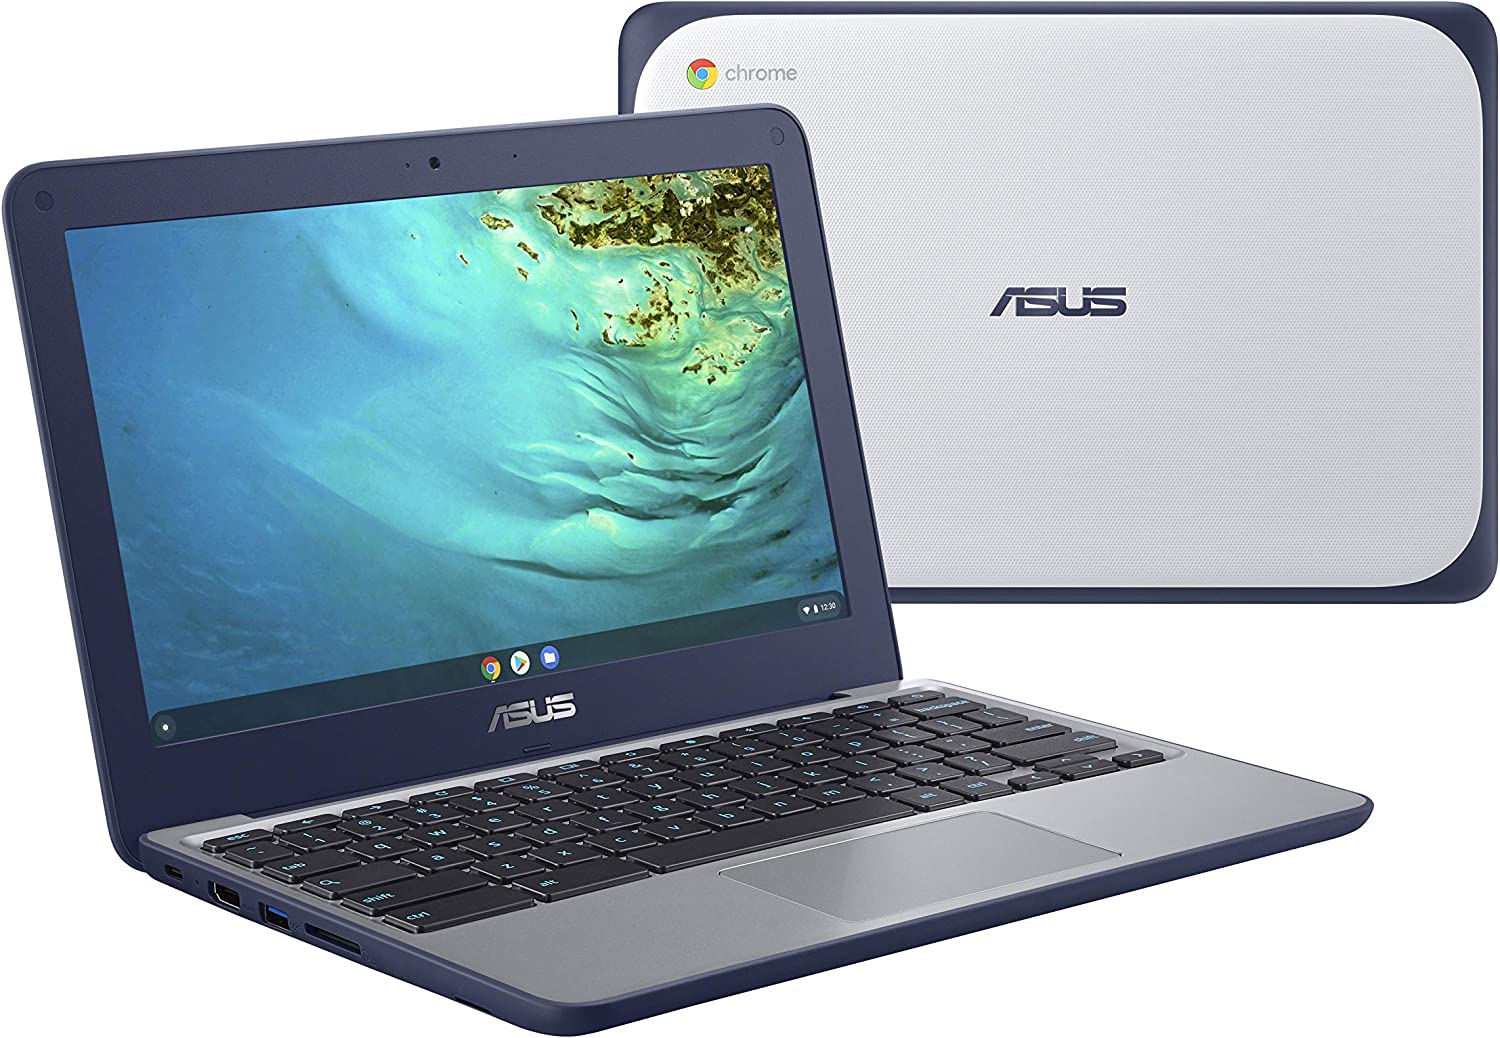 "ASUS Chromebook C202XA Rugged & Spill Resistant Laptop, 11.6"" HD, 180 Degree, MediaTek 8173C Processor, 4GB RAM, 32GB Storage, MIL-STD 810G Durability, Blue, Education, Chrome OS, C202XA-YB04-BL"